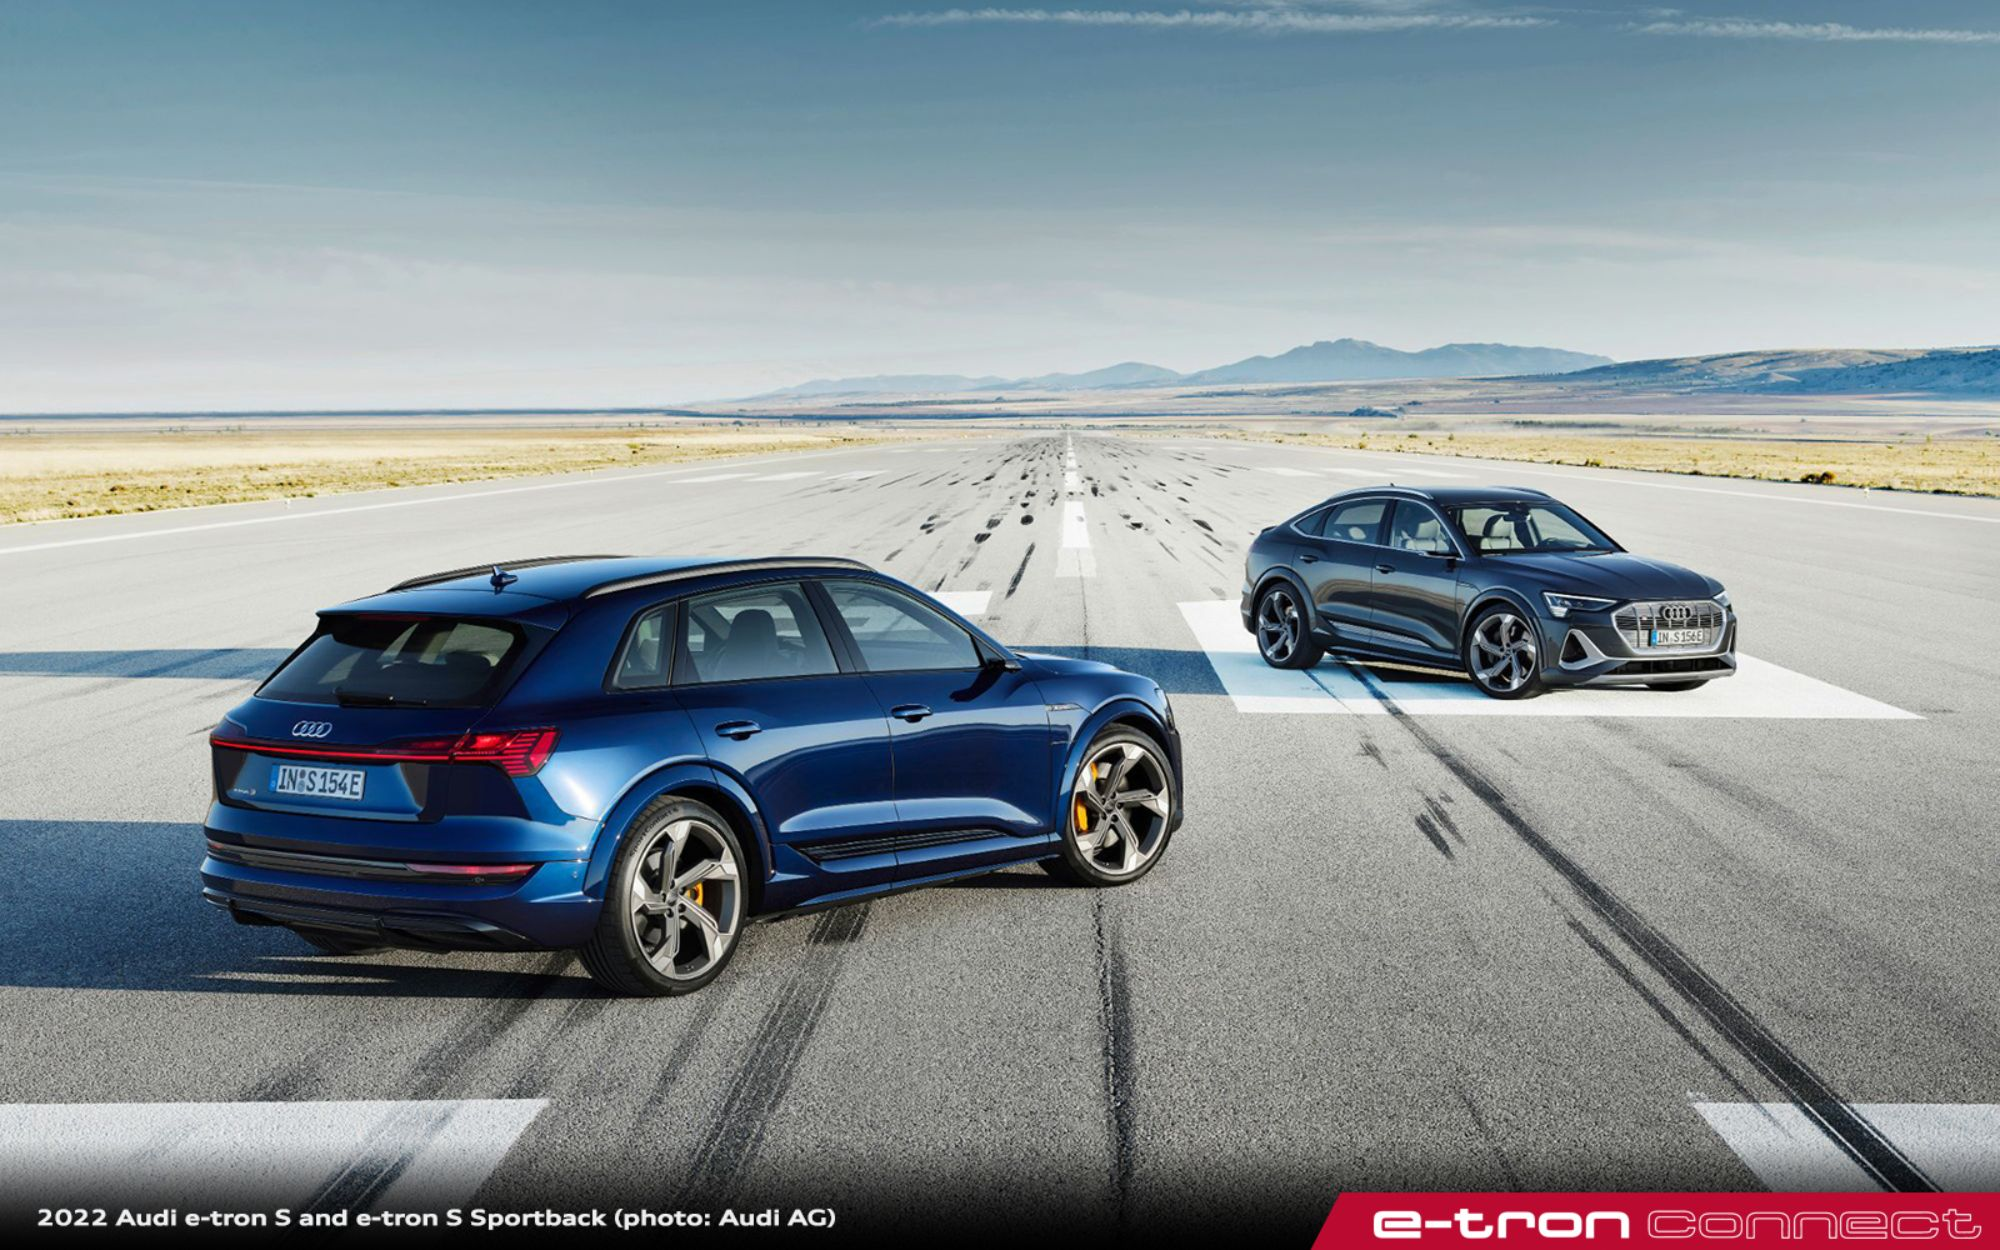 2022 Audi e-tron S and e-tron S Sportback Models Coming to US This Fall